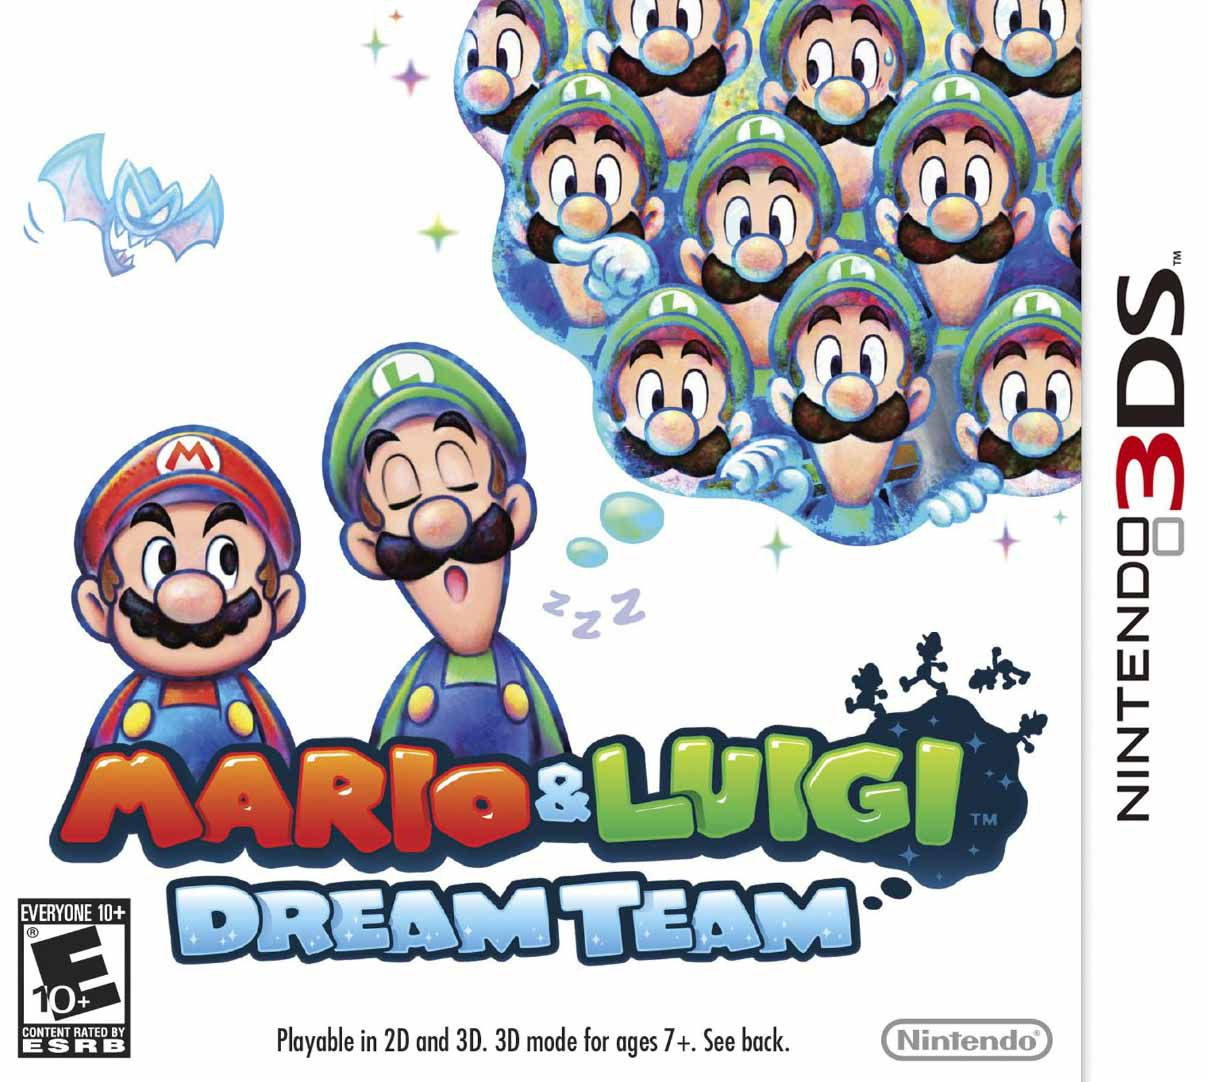 Publicity still for Mario & Luigi: Dream Team